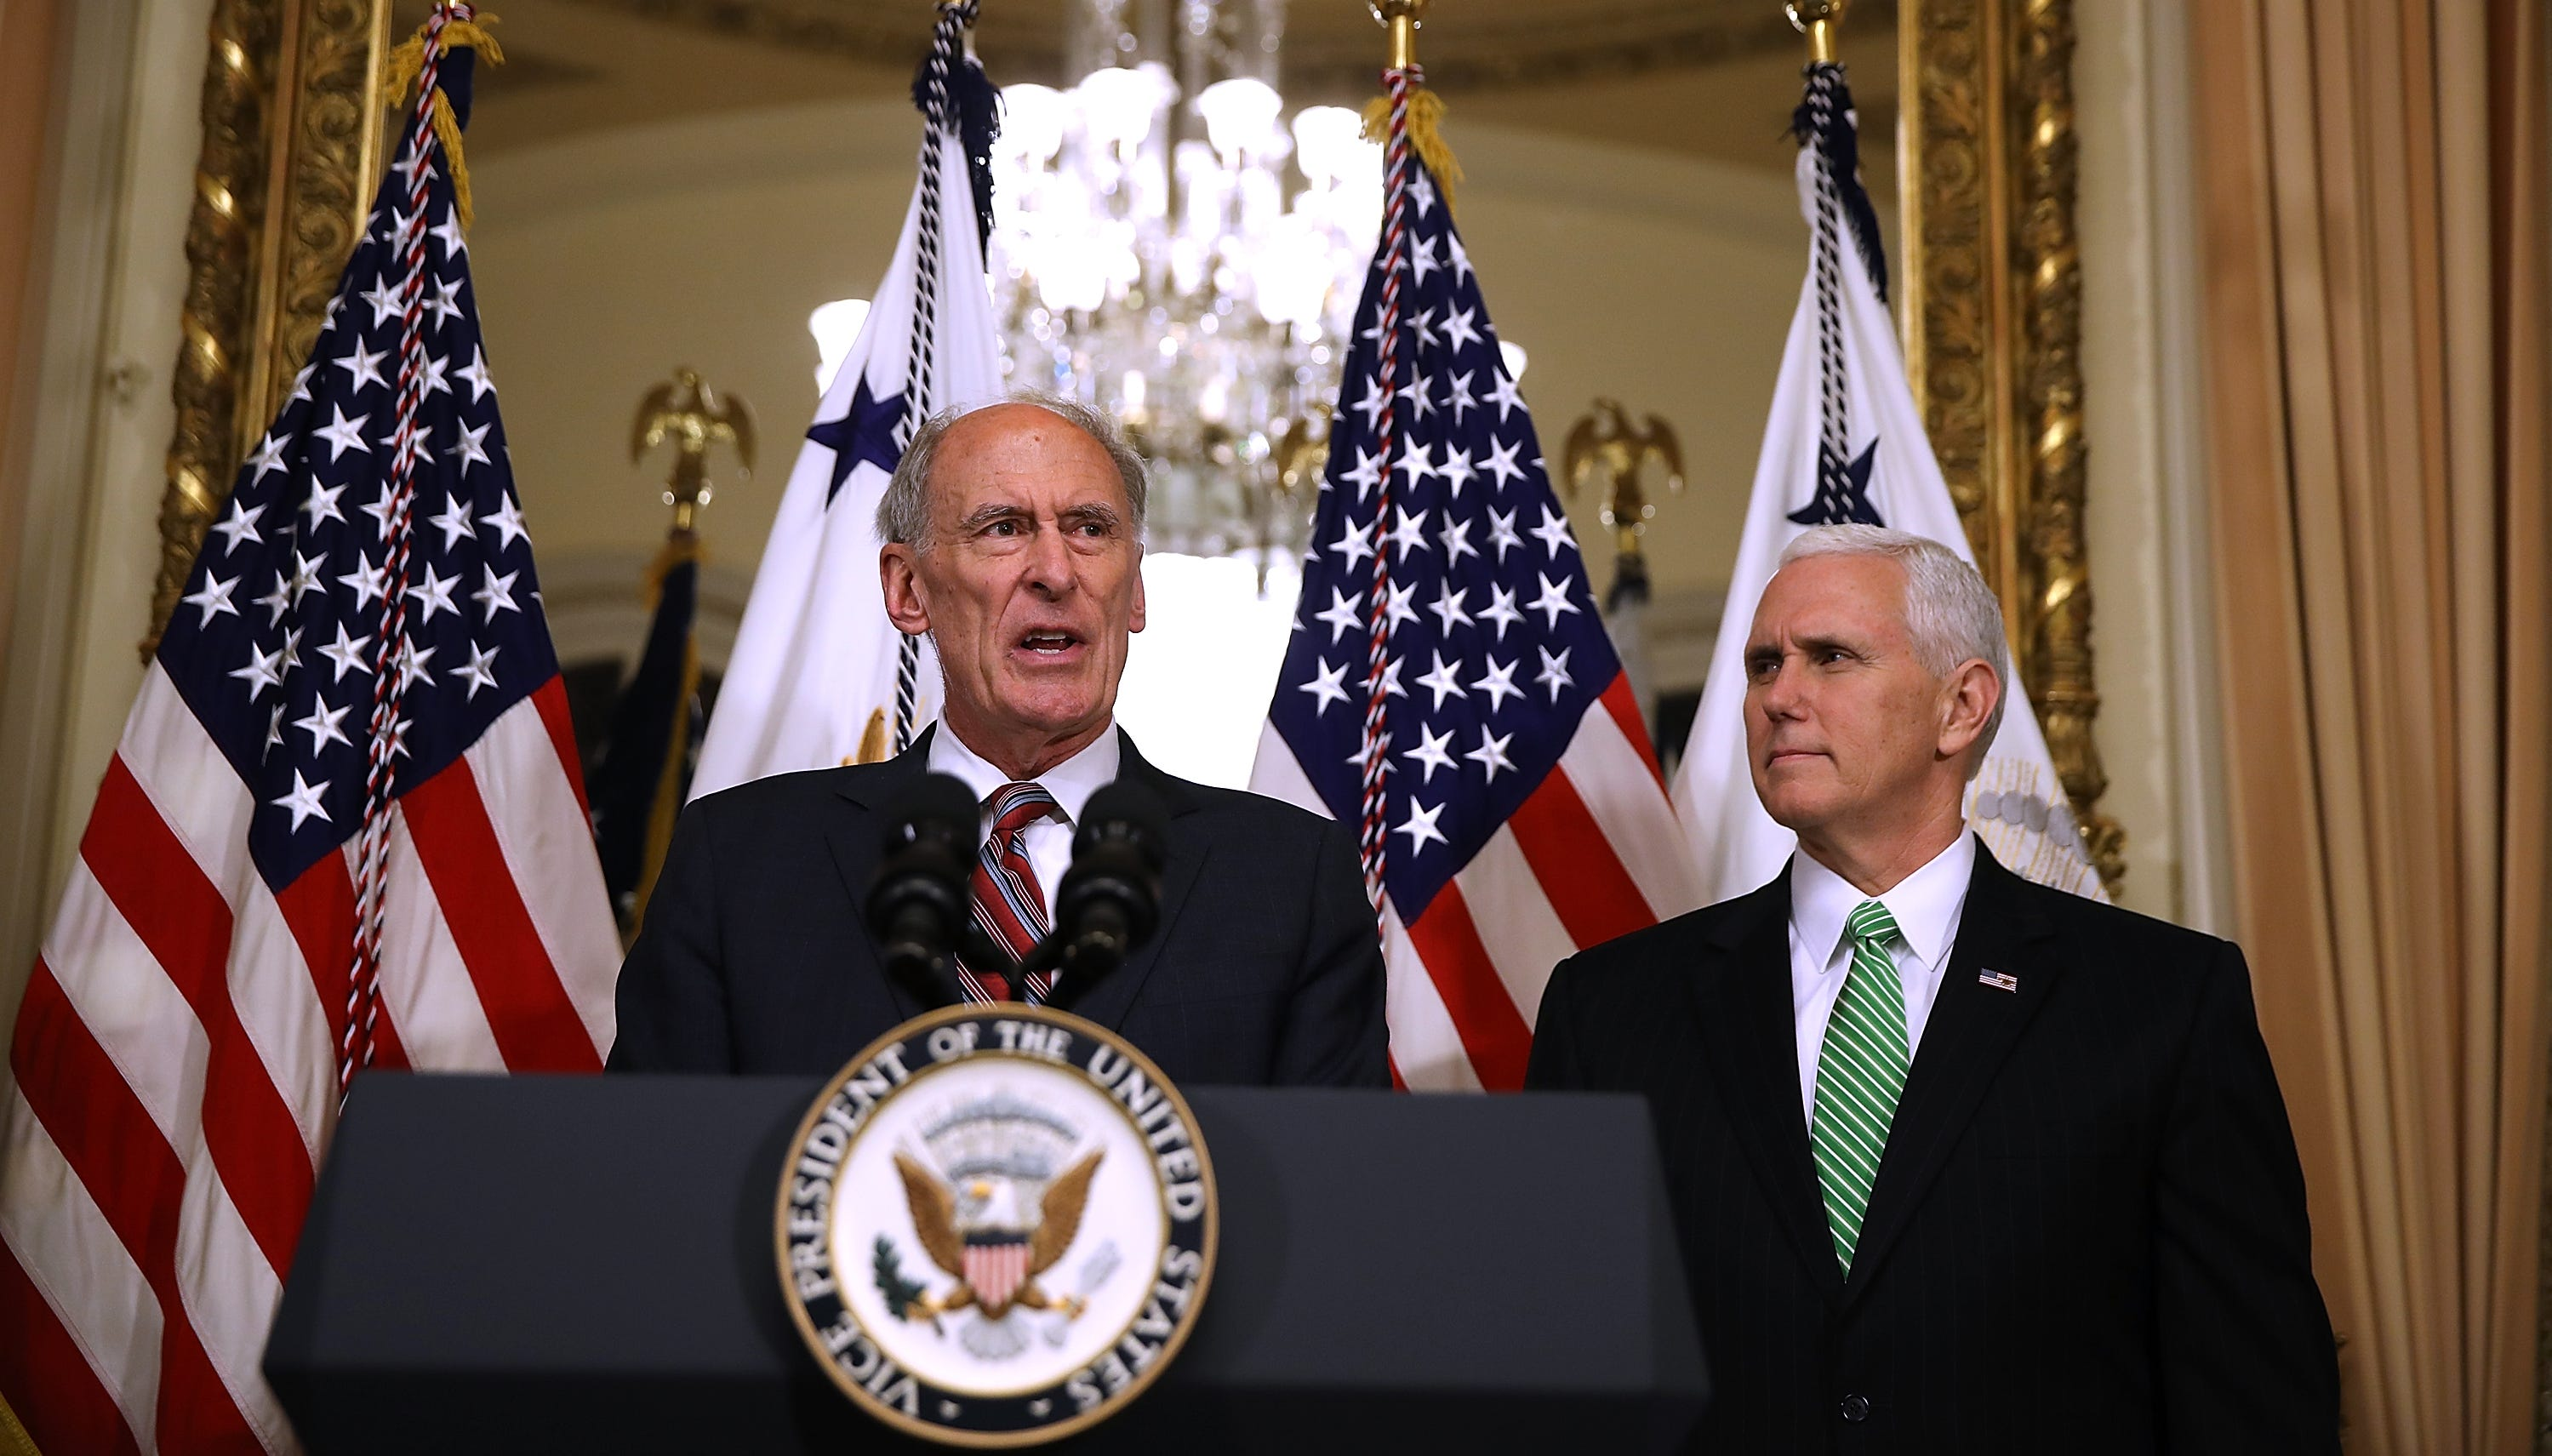 Lodestar edition: Pence and Coats deny they wrote anti-Trump op-ed as internet churns